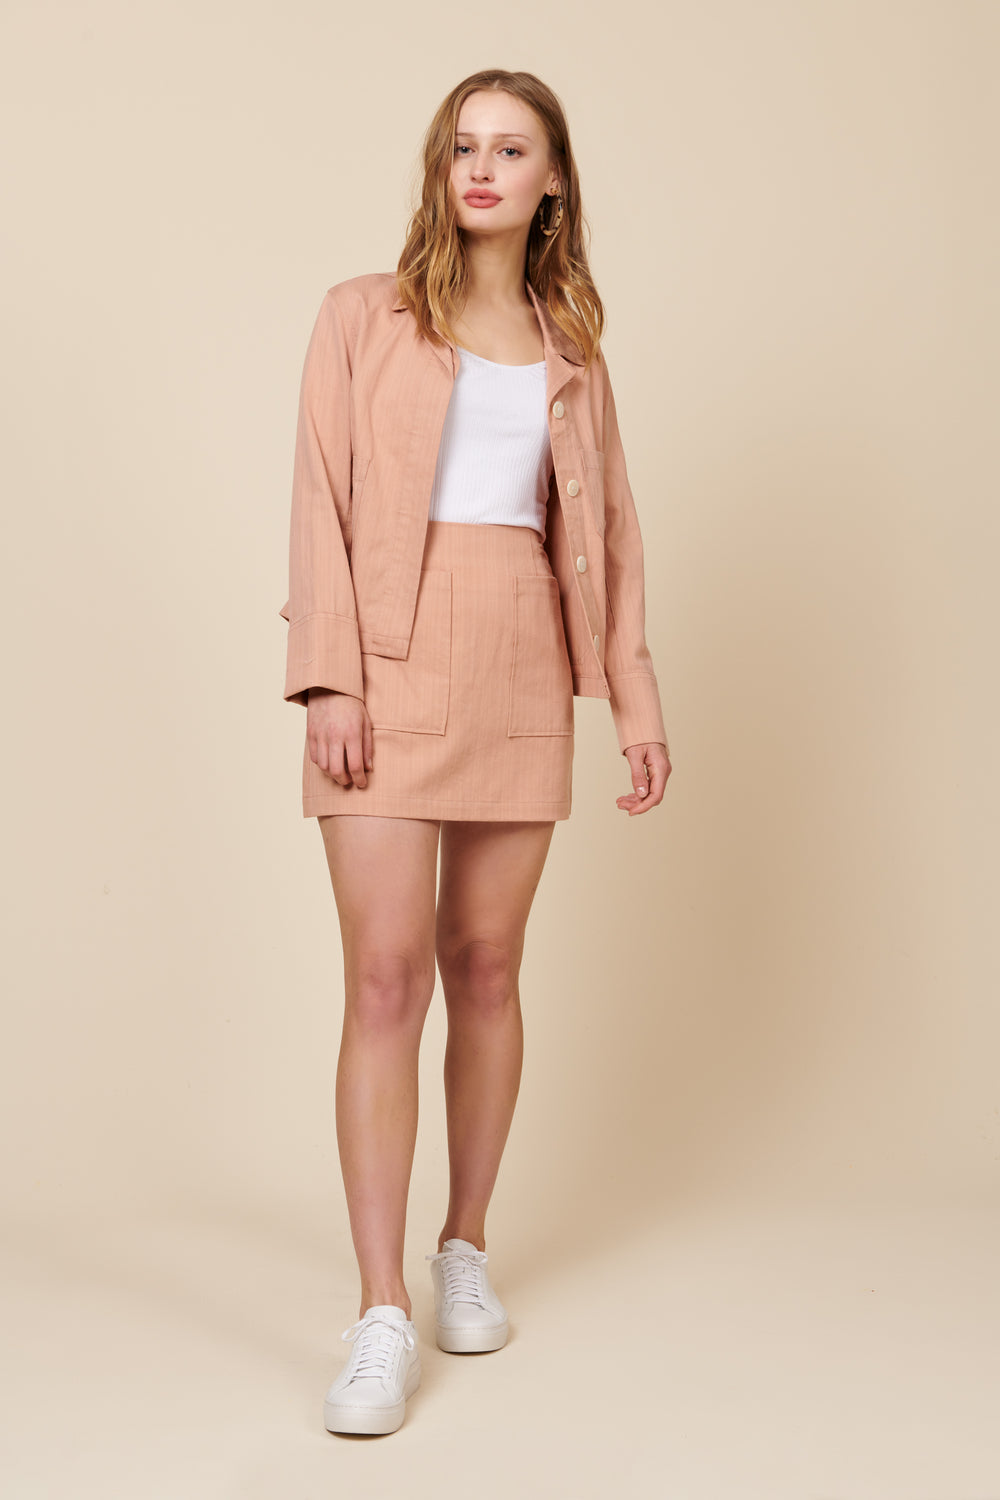 Teagan Skirt in Blush - Whimsy & Row